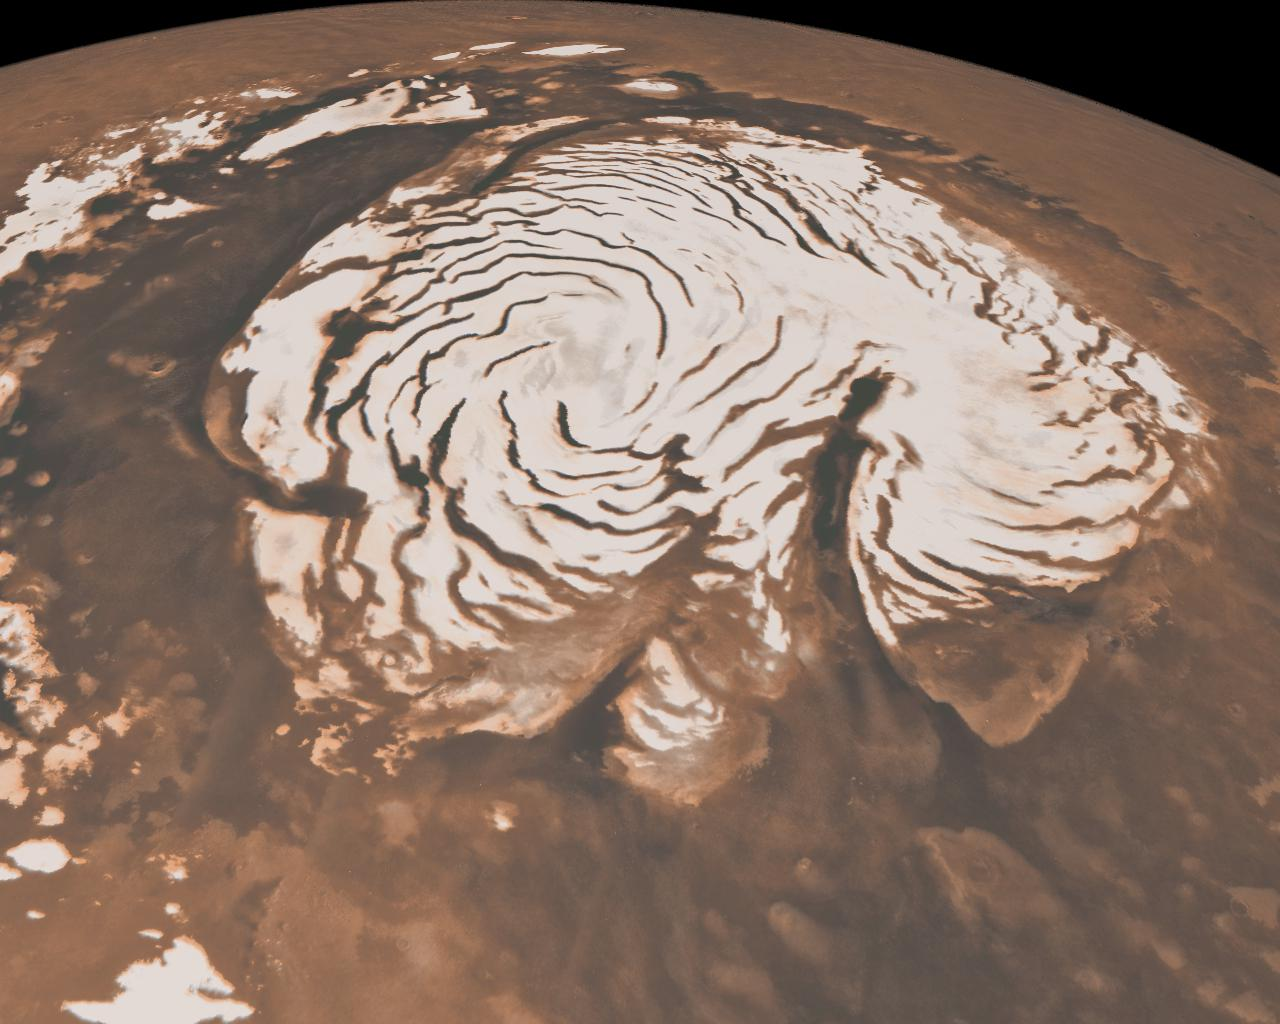 Northern ice cap. Image credit: NASA/JPL/Caltech/MSSS